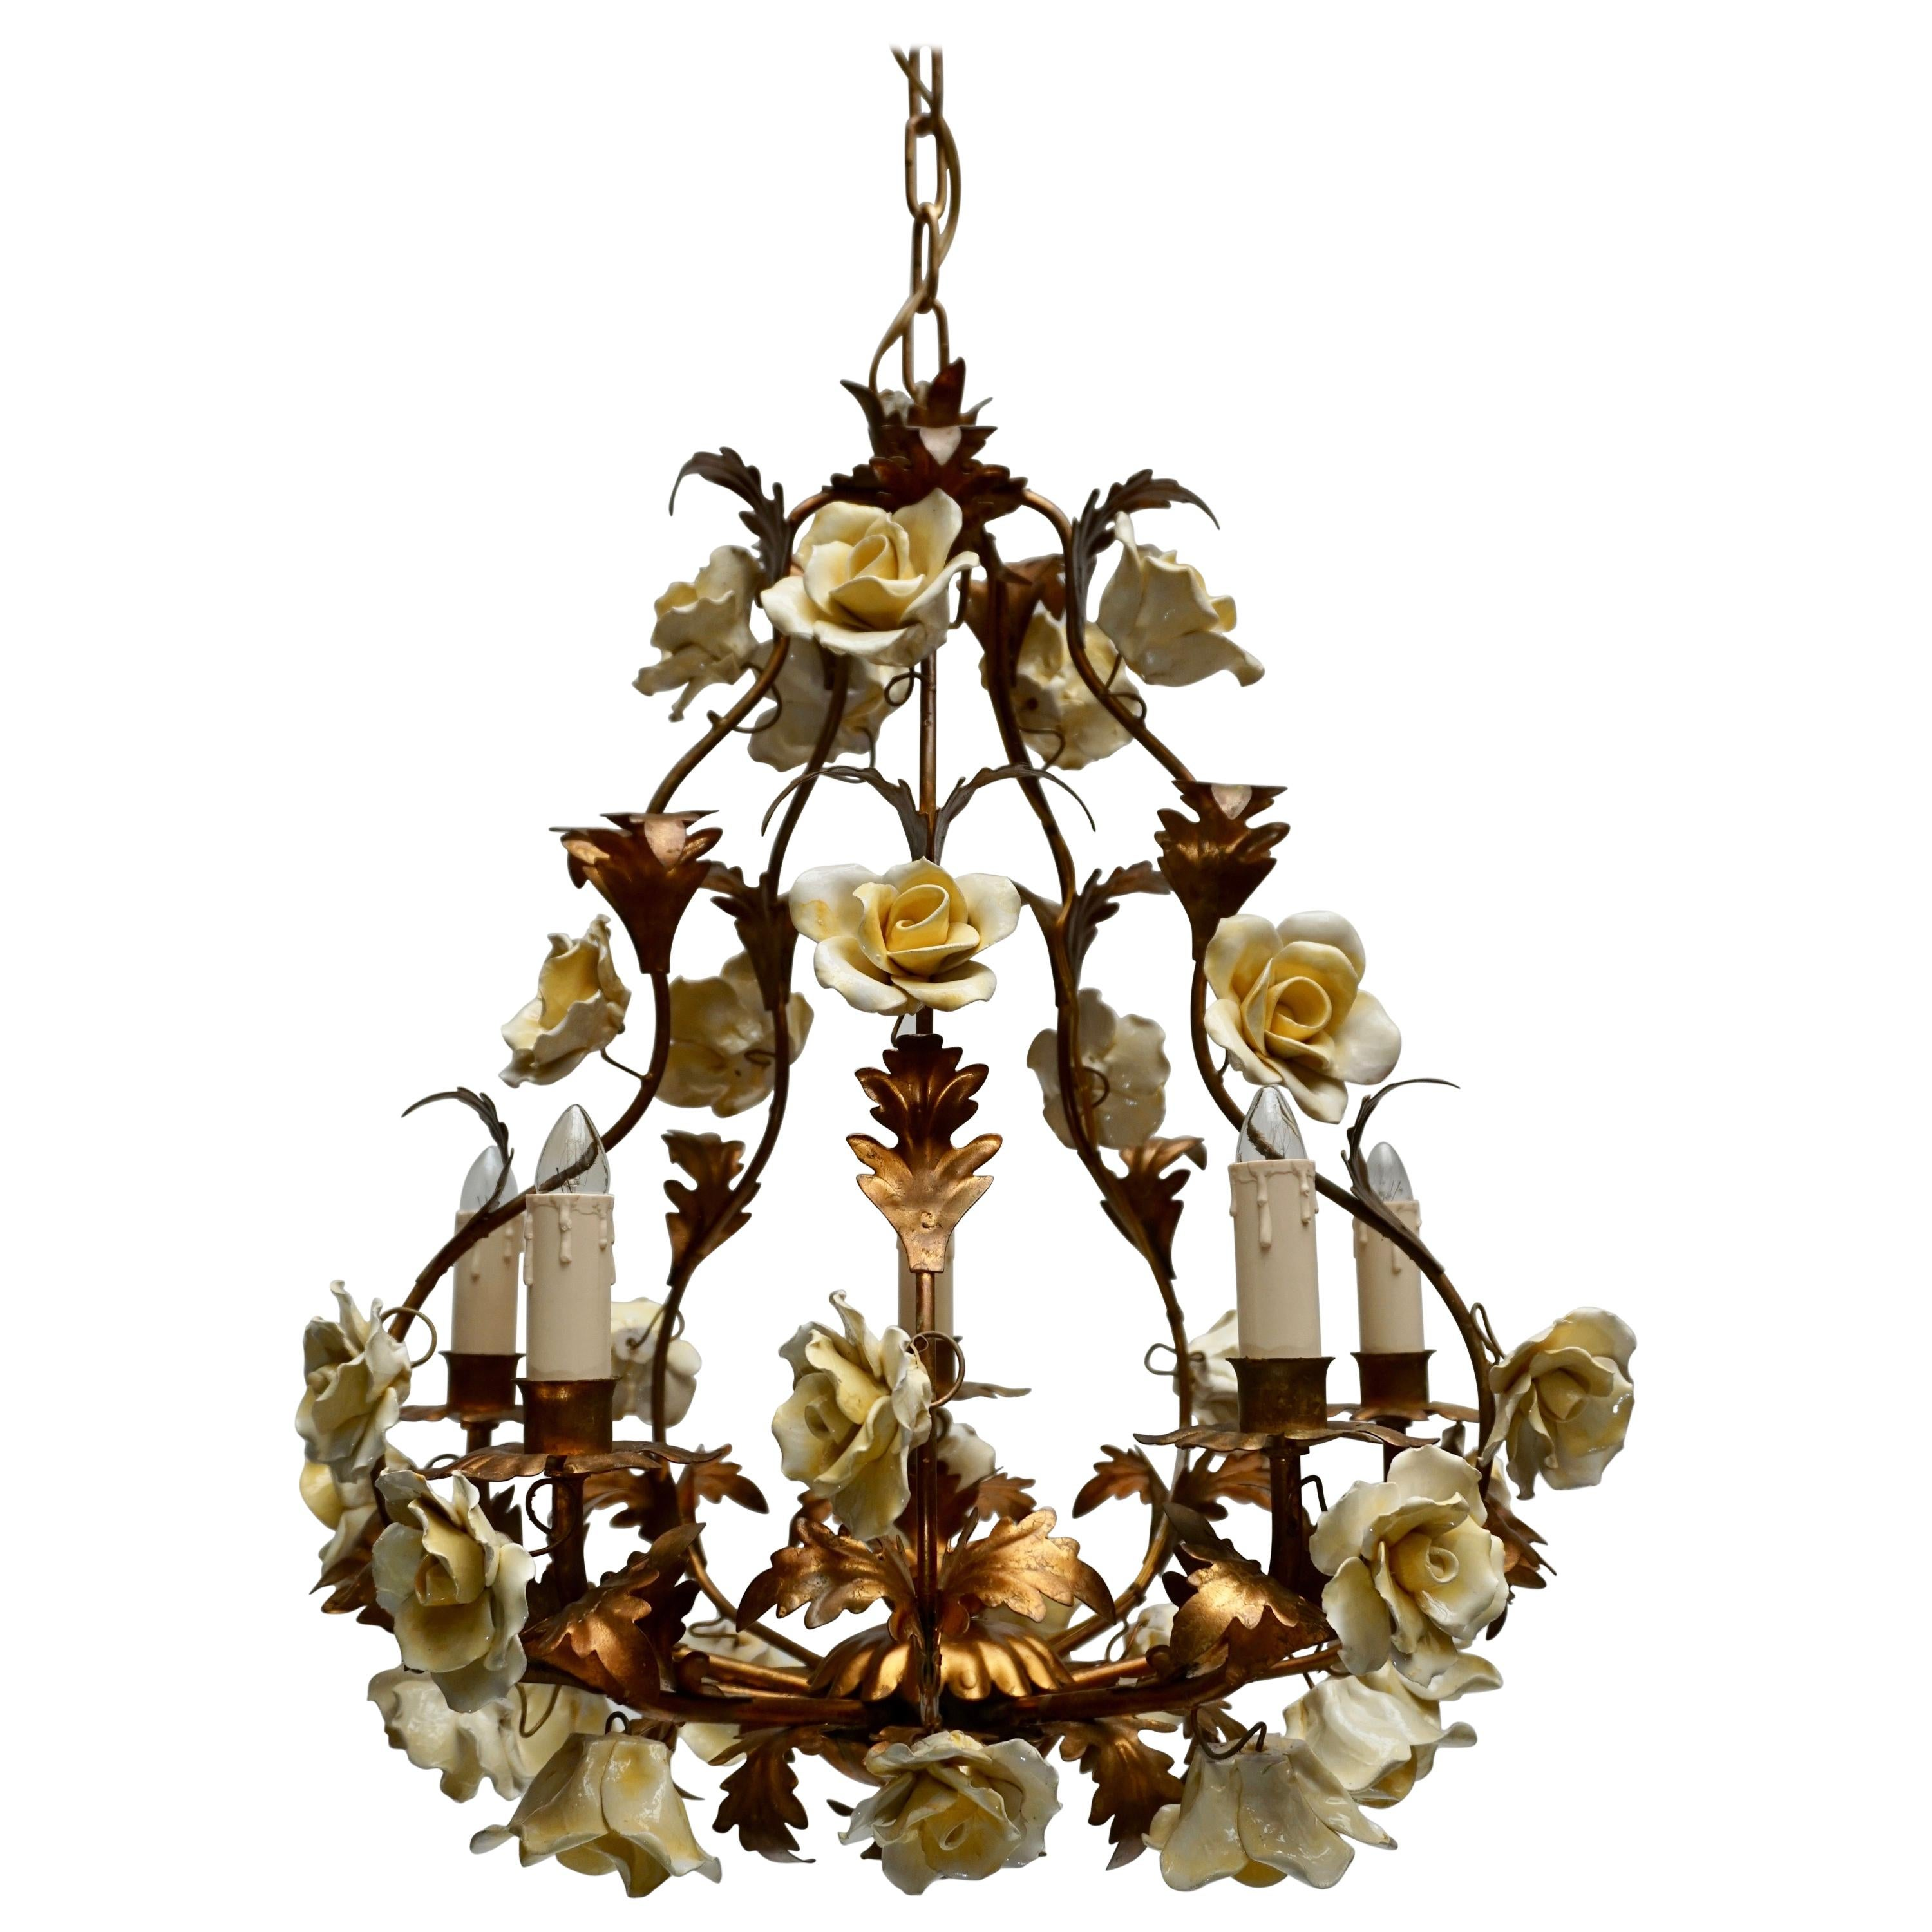 Italian Brass Tole Chandelier with Yellow Porcelain Flowers